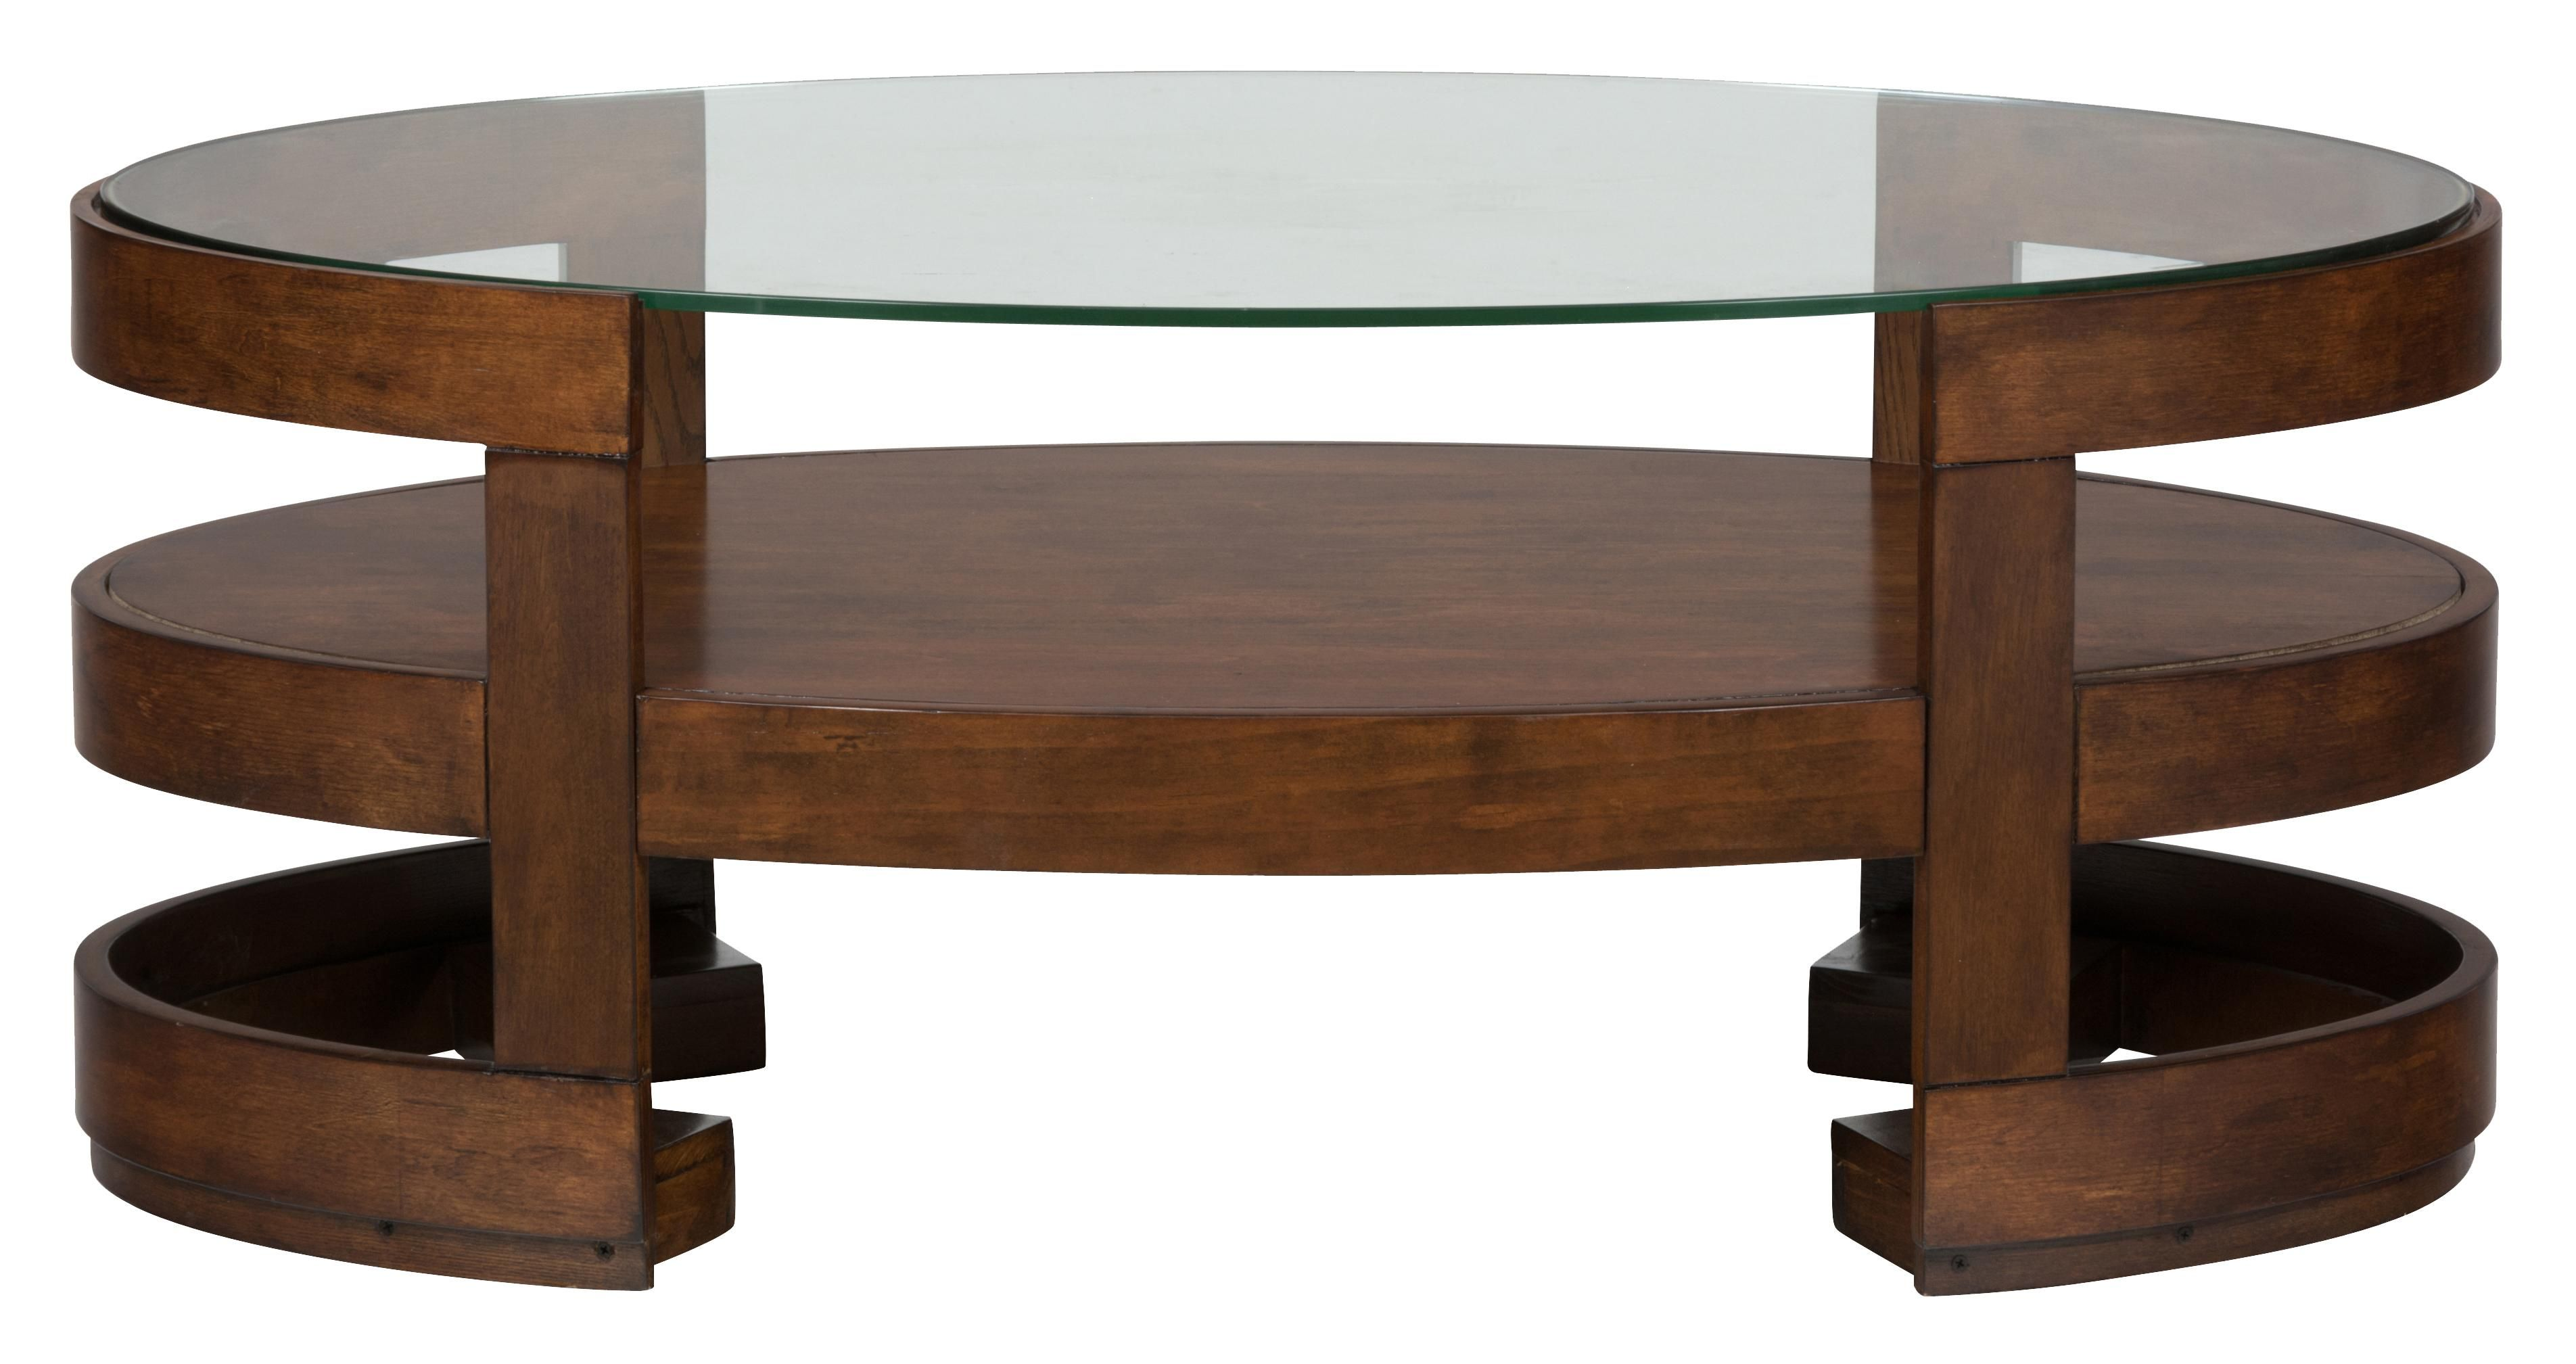 Avon Birch Oval Cocktail Table with Glass Top by Jofran